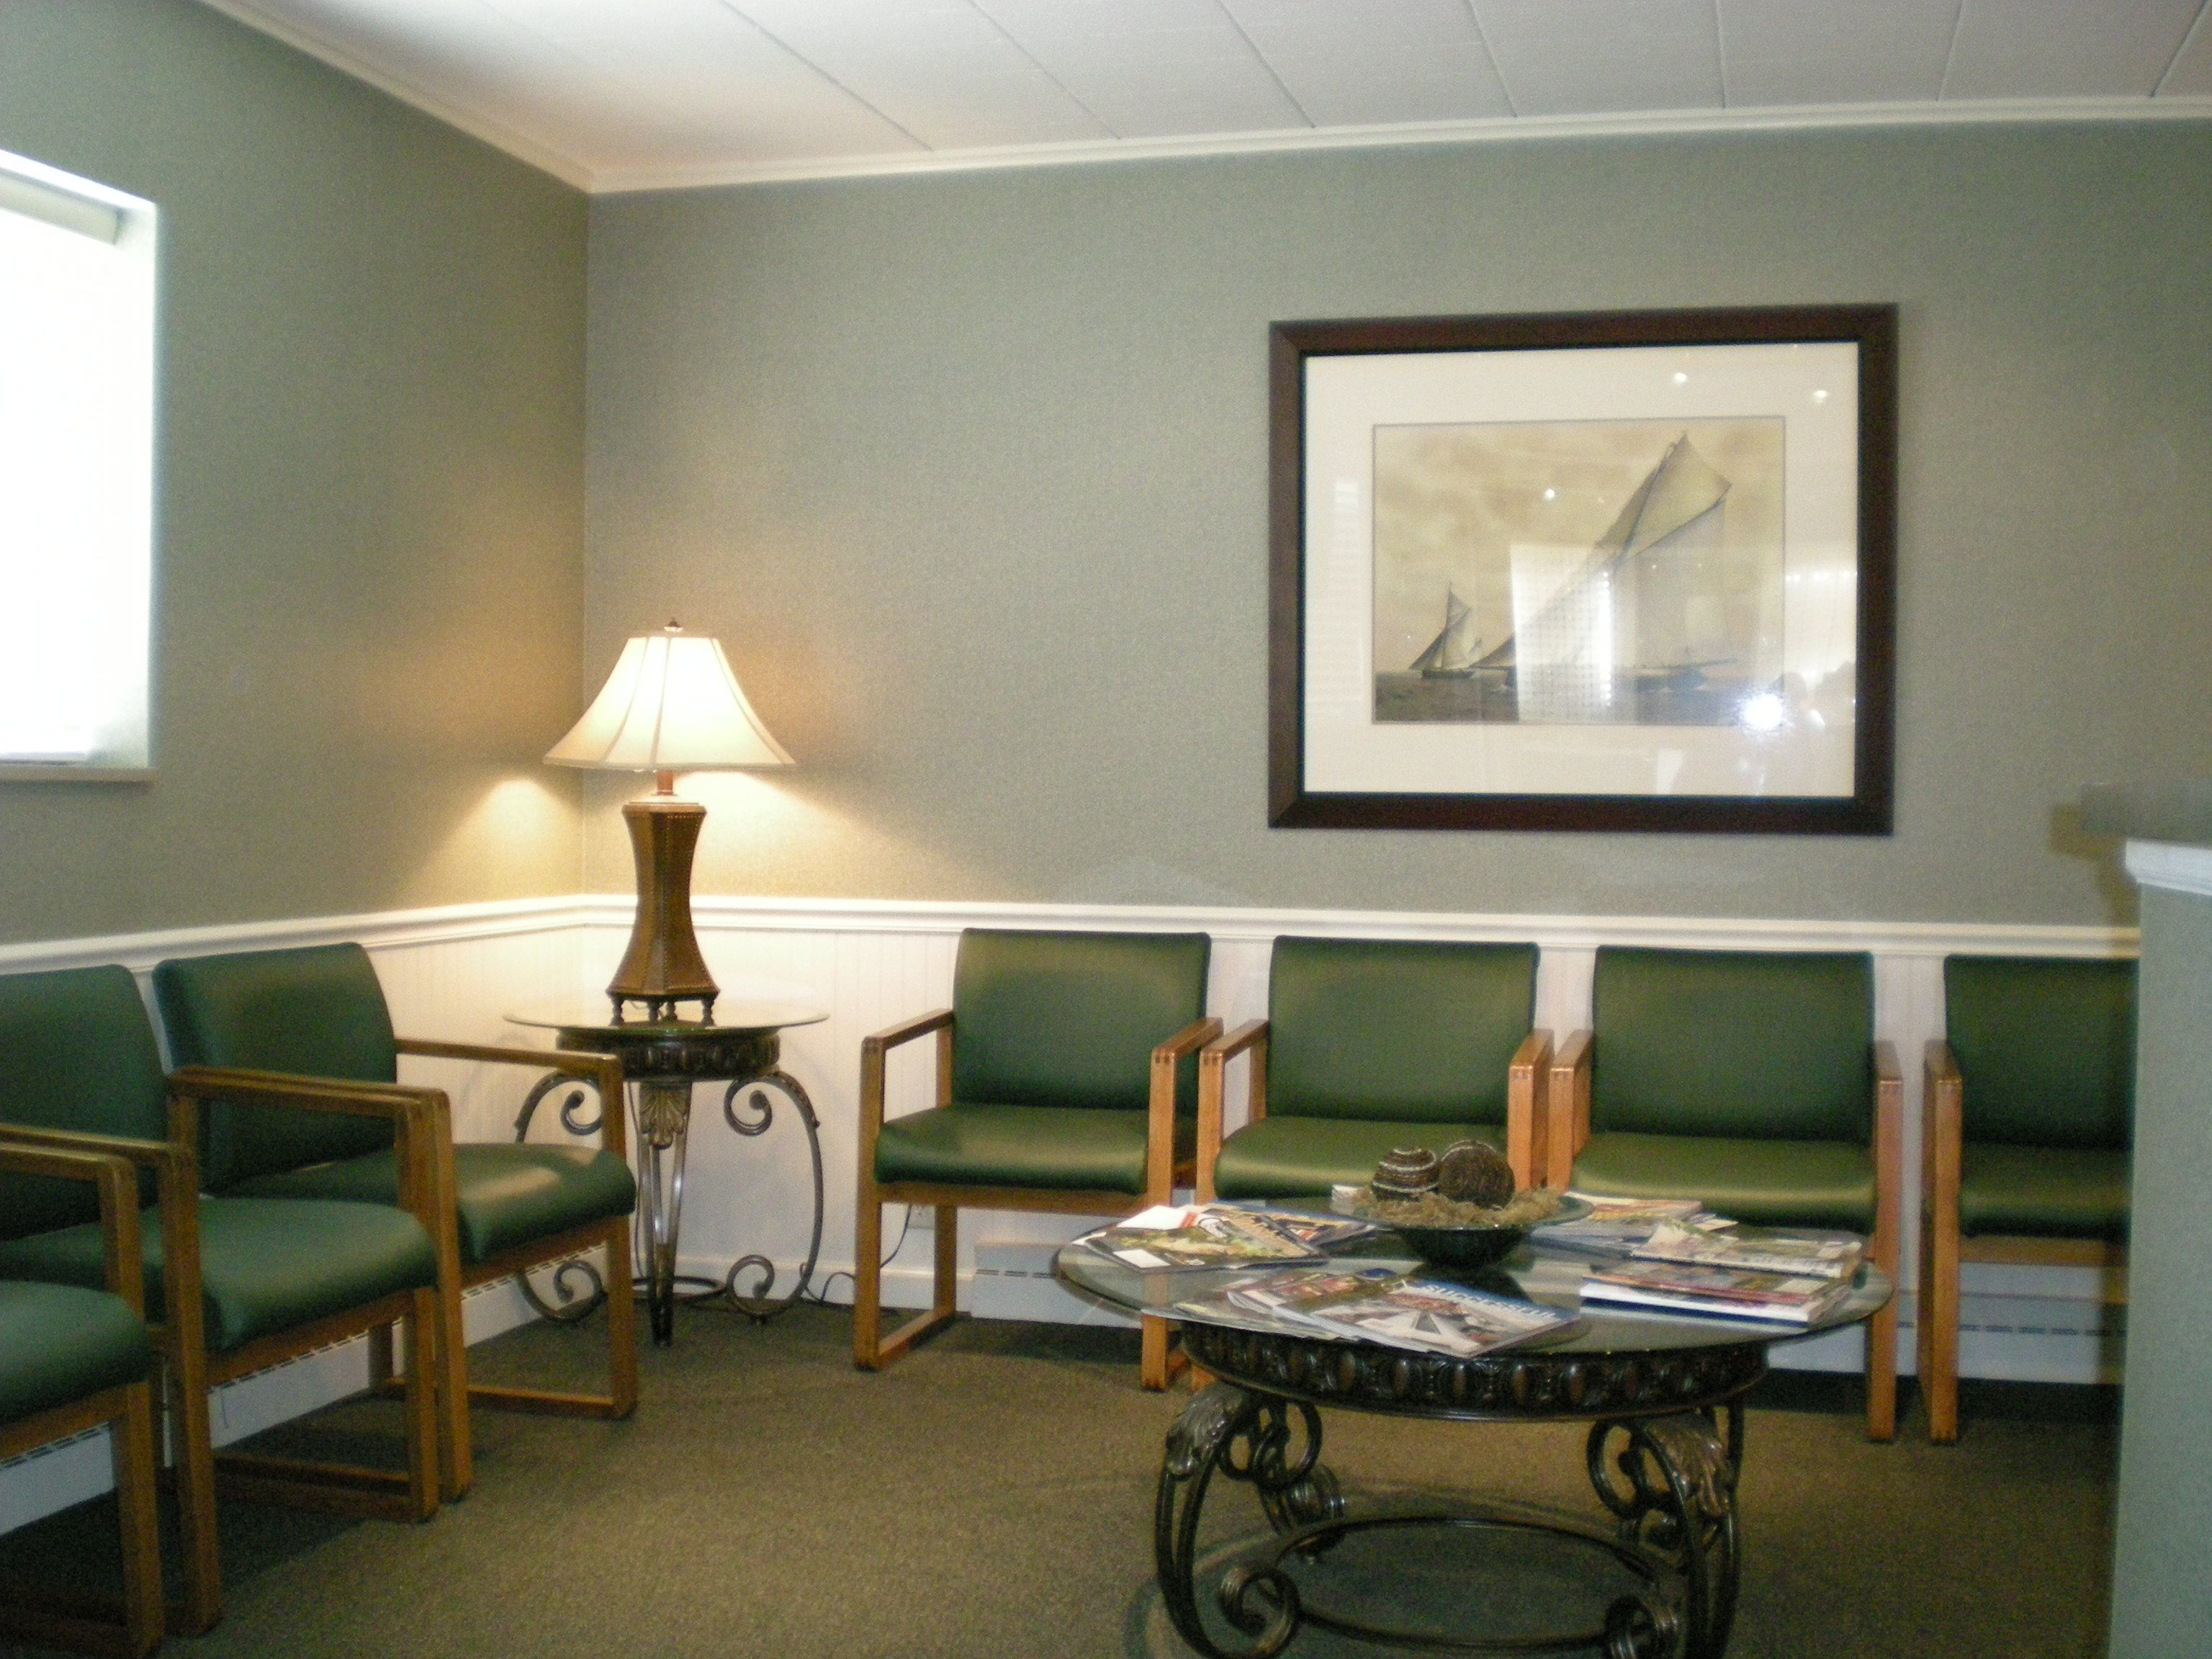 Waiting Room interior design with green chairs